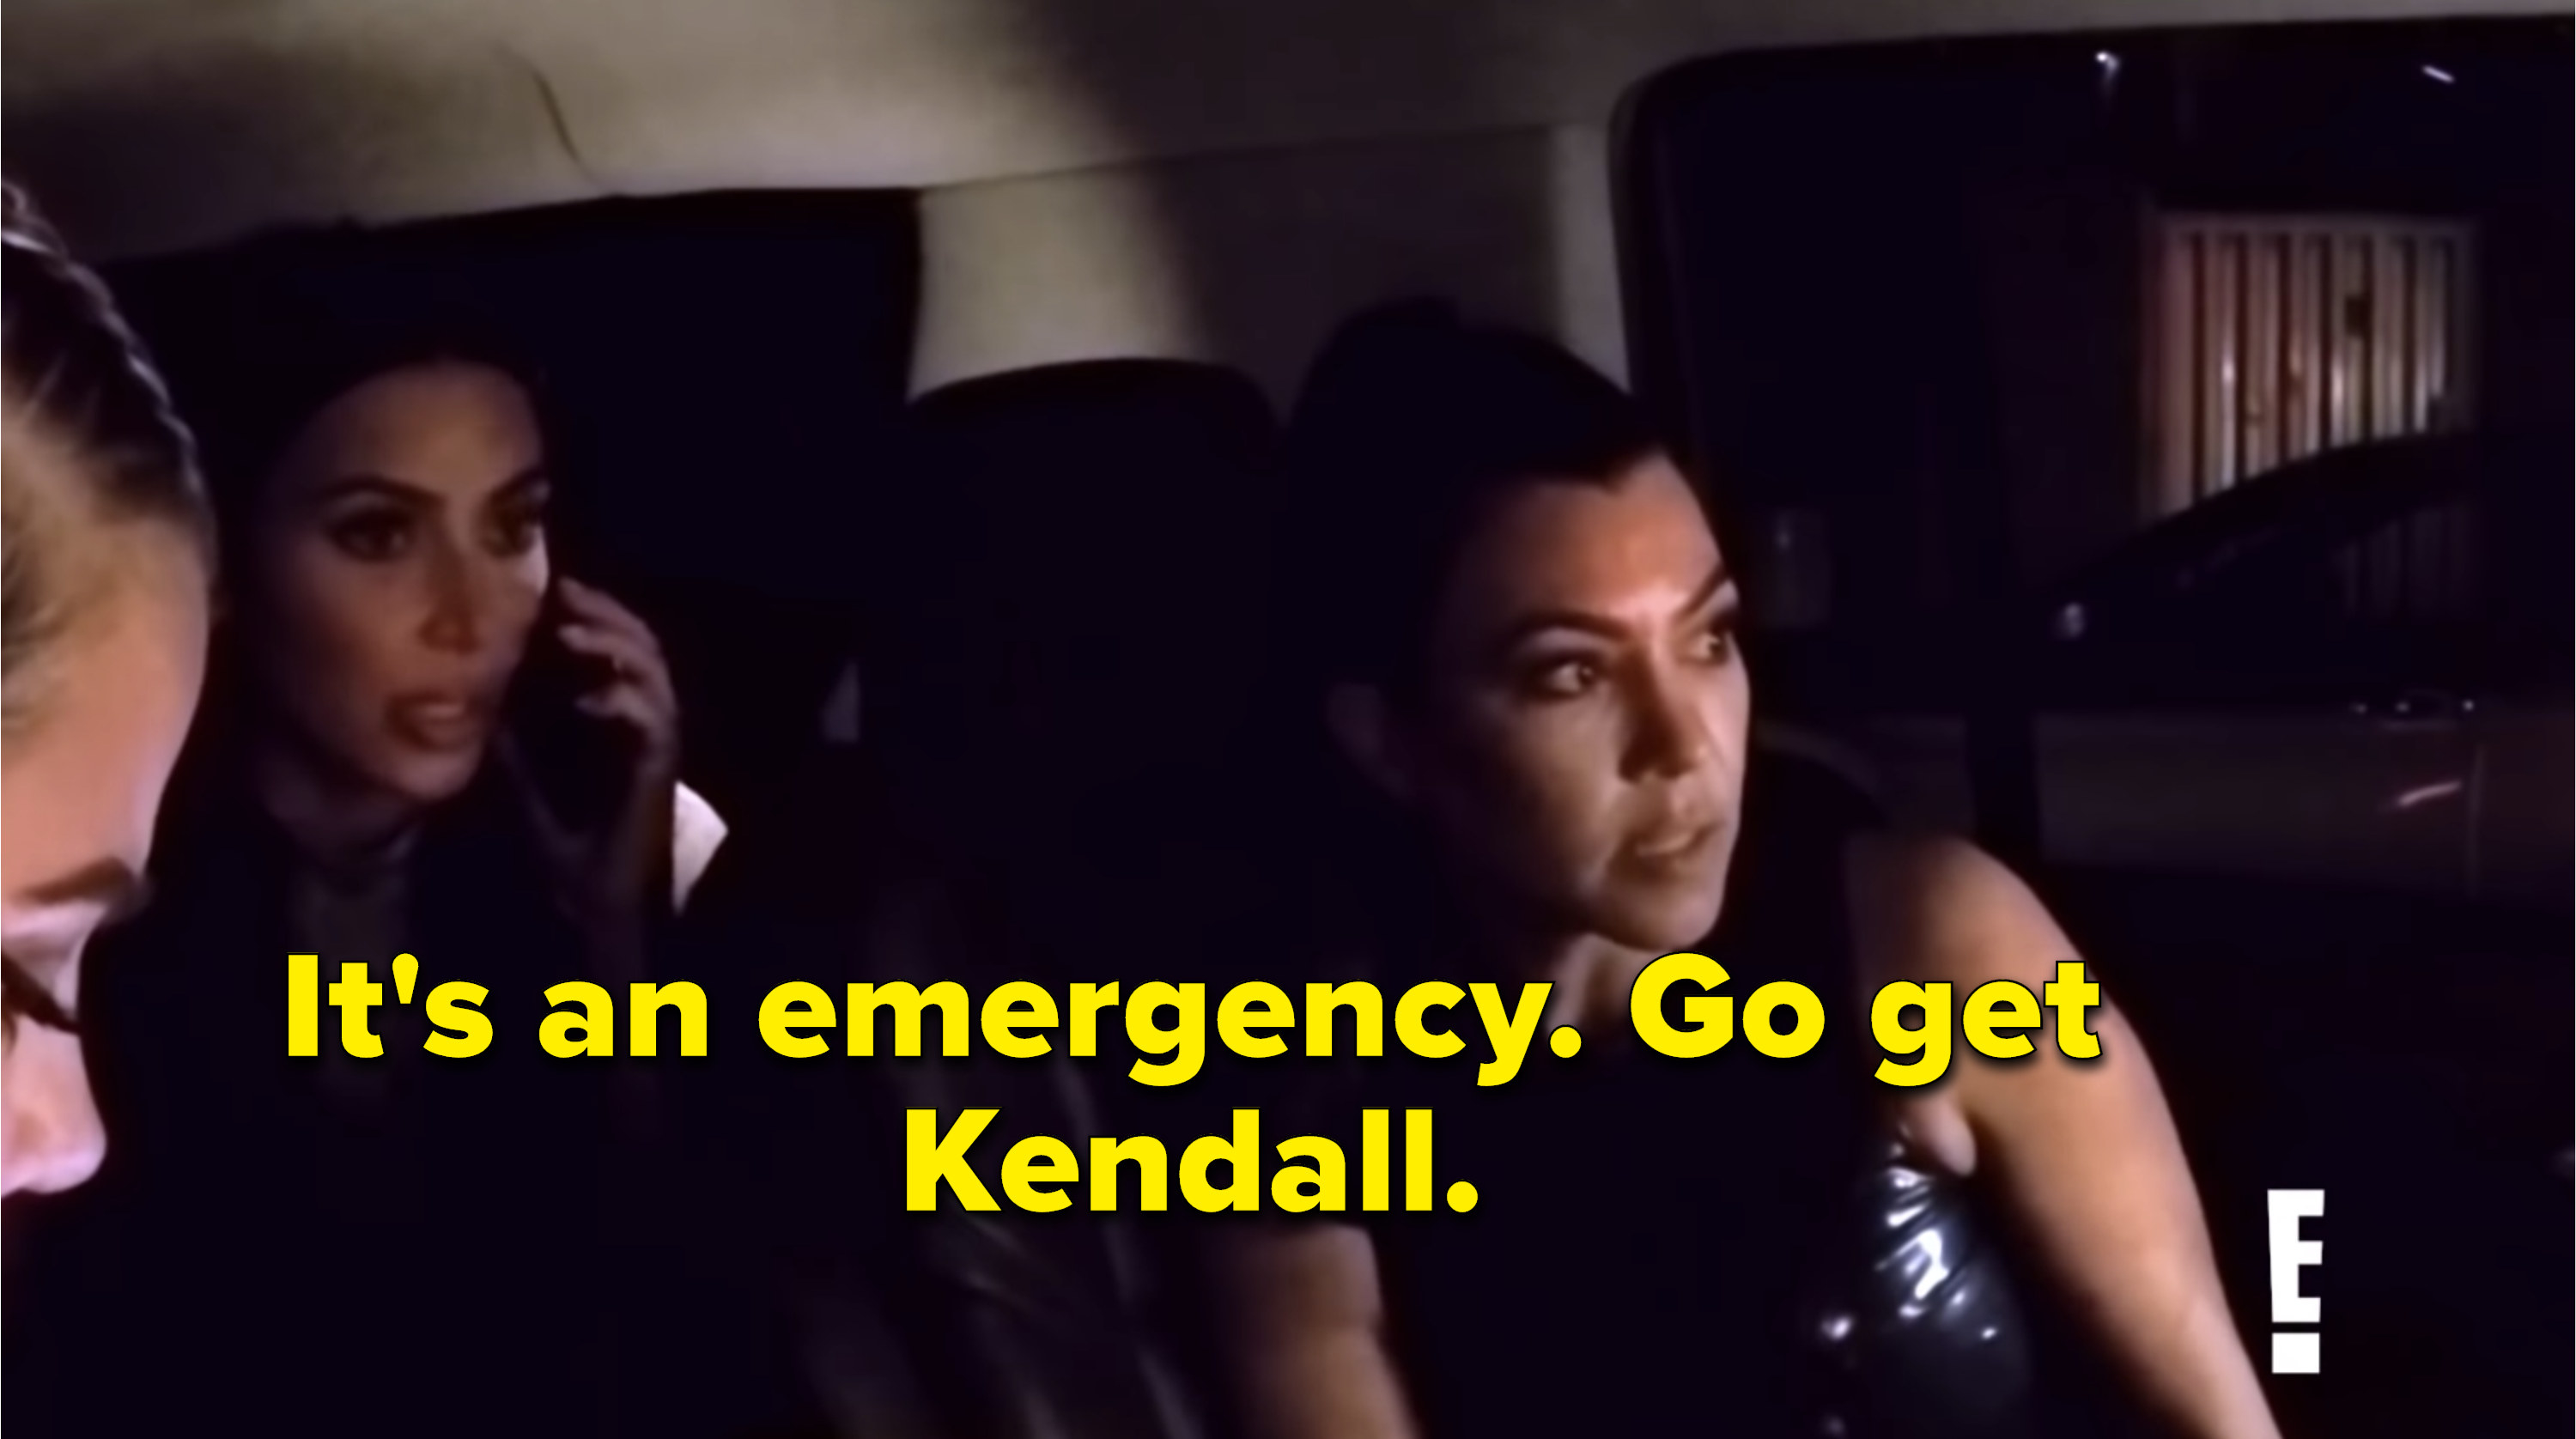 Kim telling security to go get Kendall